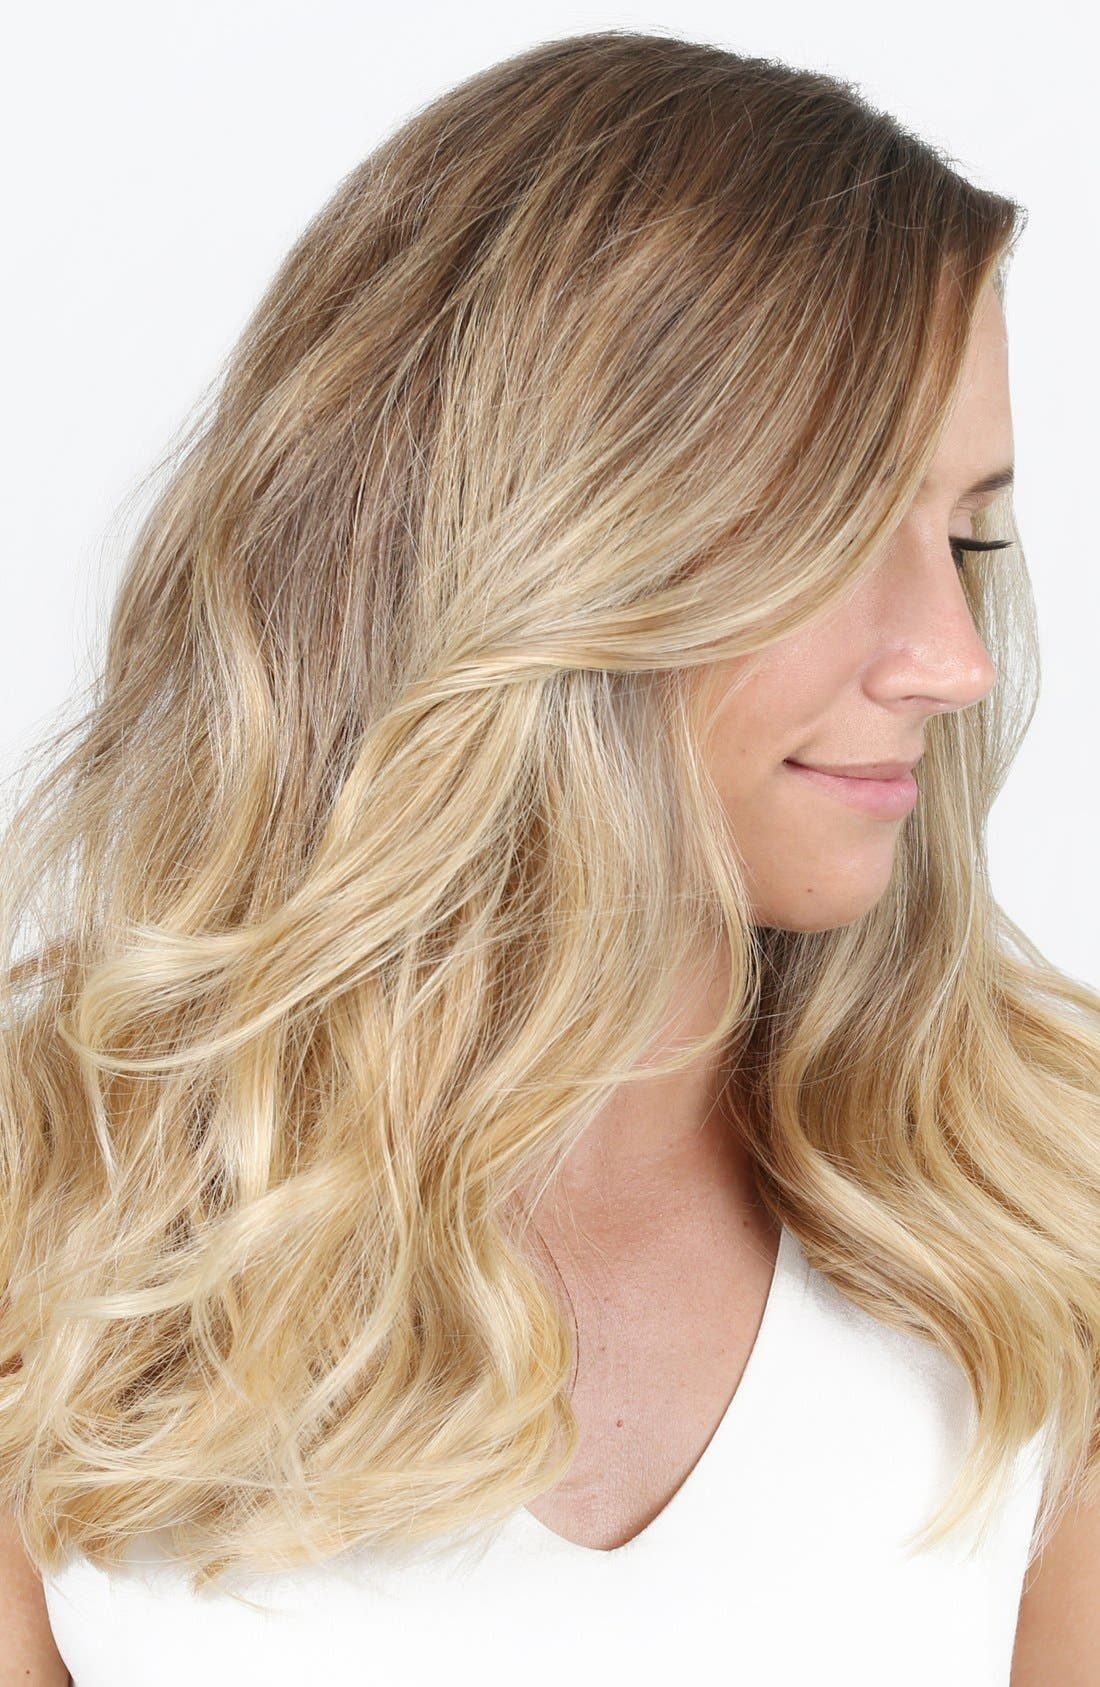 Beachwaver<sup>®</sup> Pro 1 1/4-Inch Professional Rotating Curling Iron,                             Alternate thumbnail 4, color,                             NO COLOR